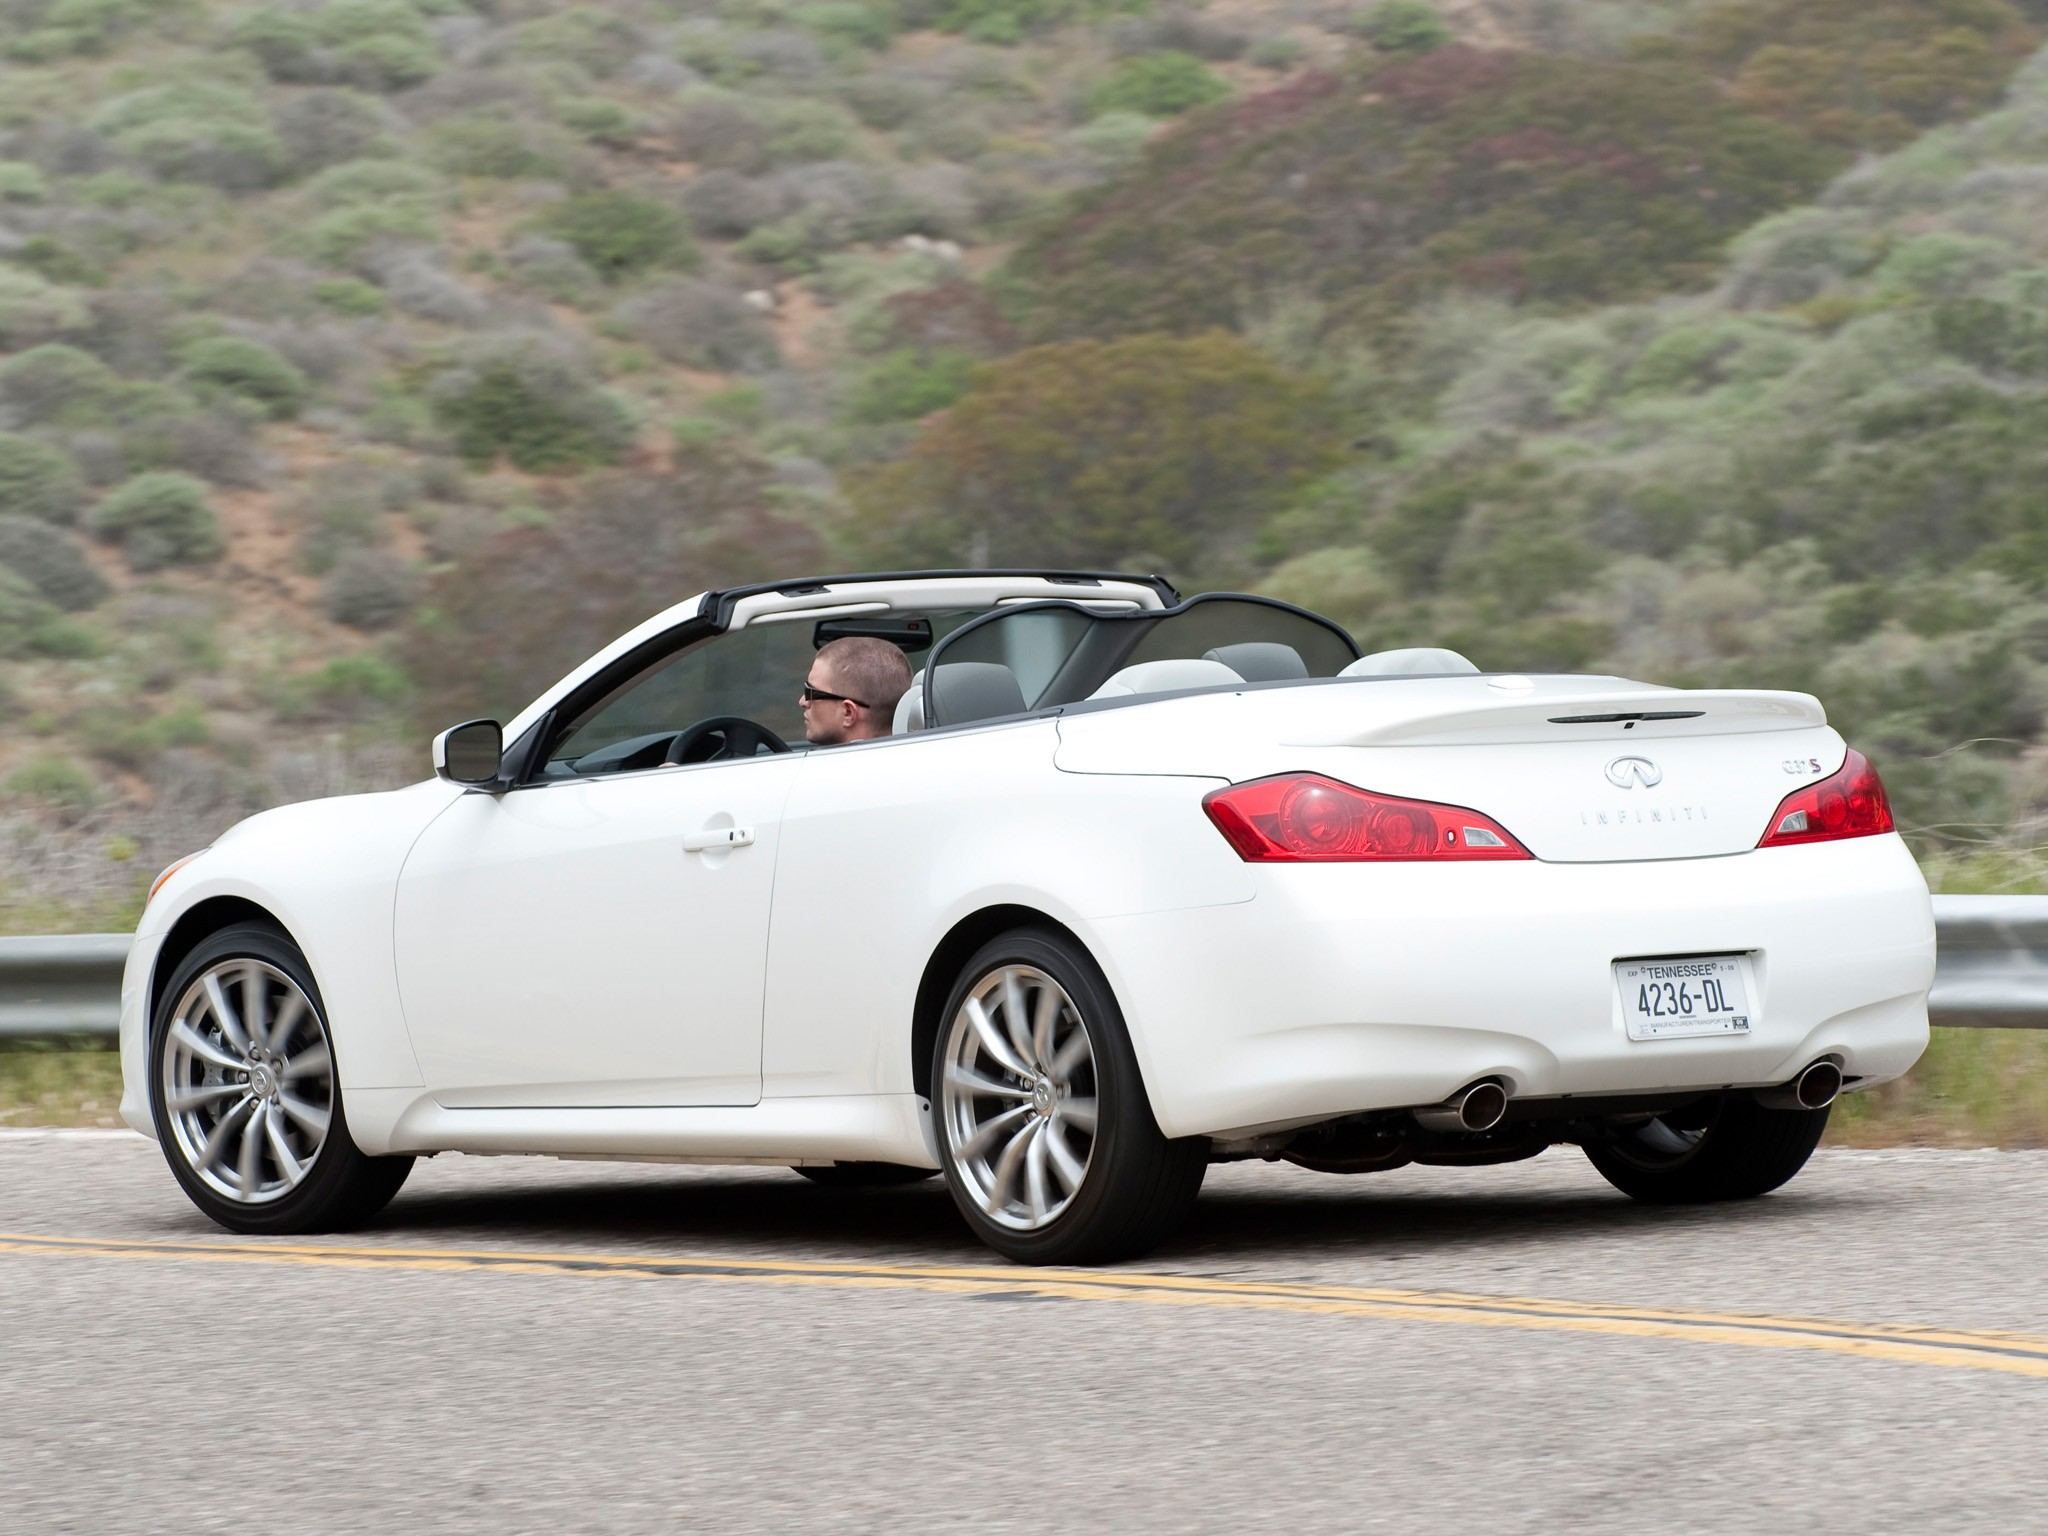 infiniti g37 convertible by - photo #1